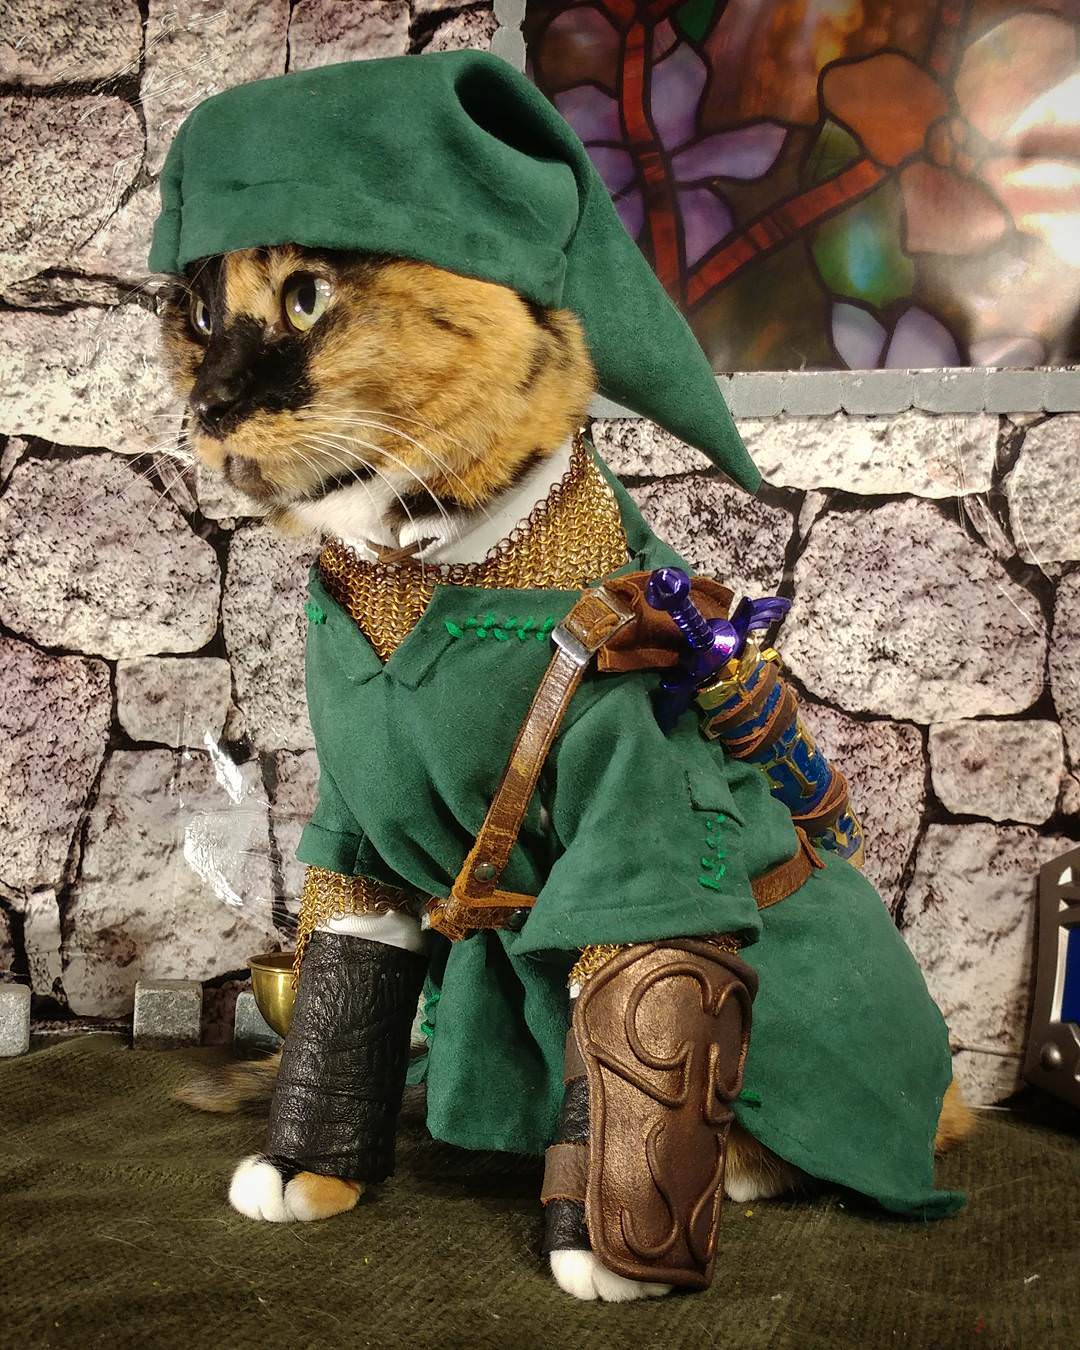 If you need to brighten up your day, Cat Link is the way ...